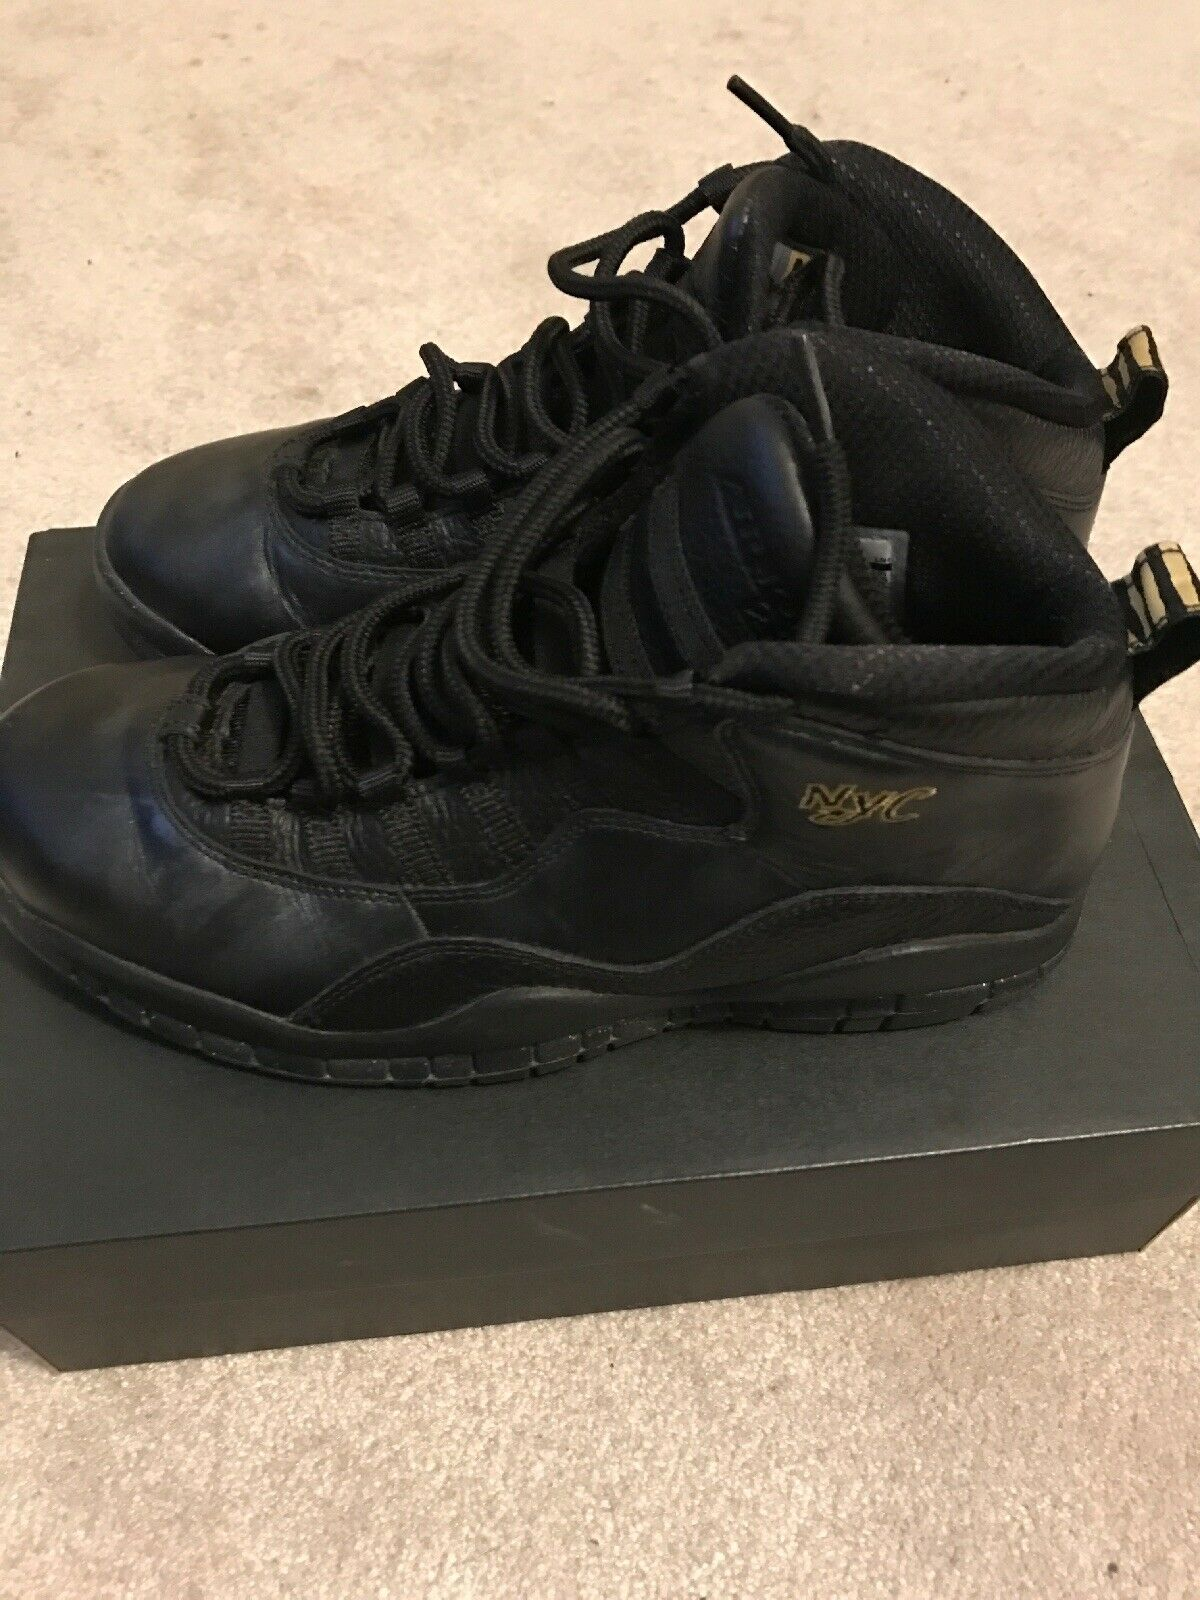 new concept 76a13 64691 ... Nike Air Air Air Jordan Retro 10 NYC mens size 8.5 310805-012 Excellent  Condition ...